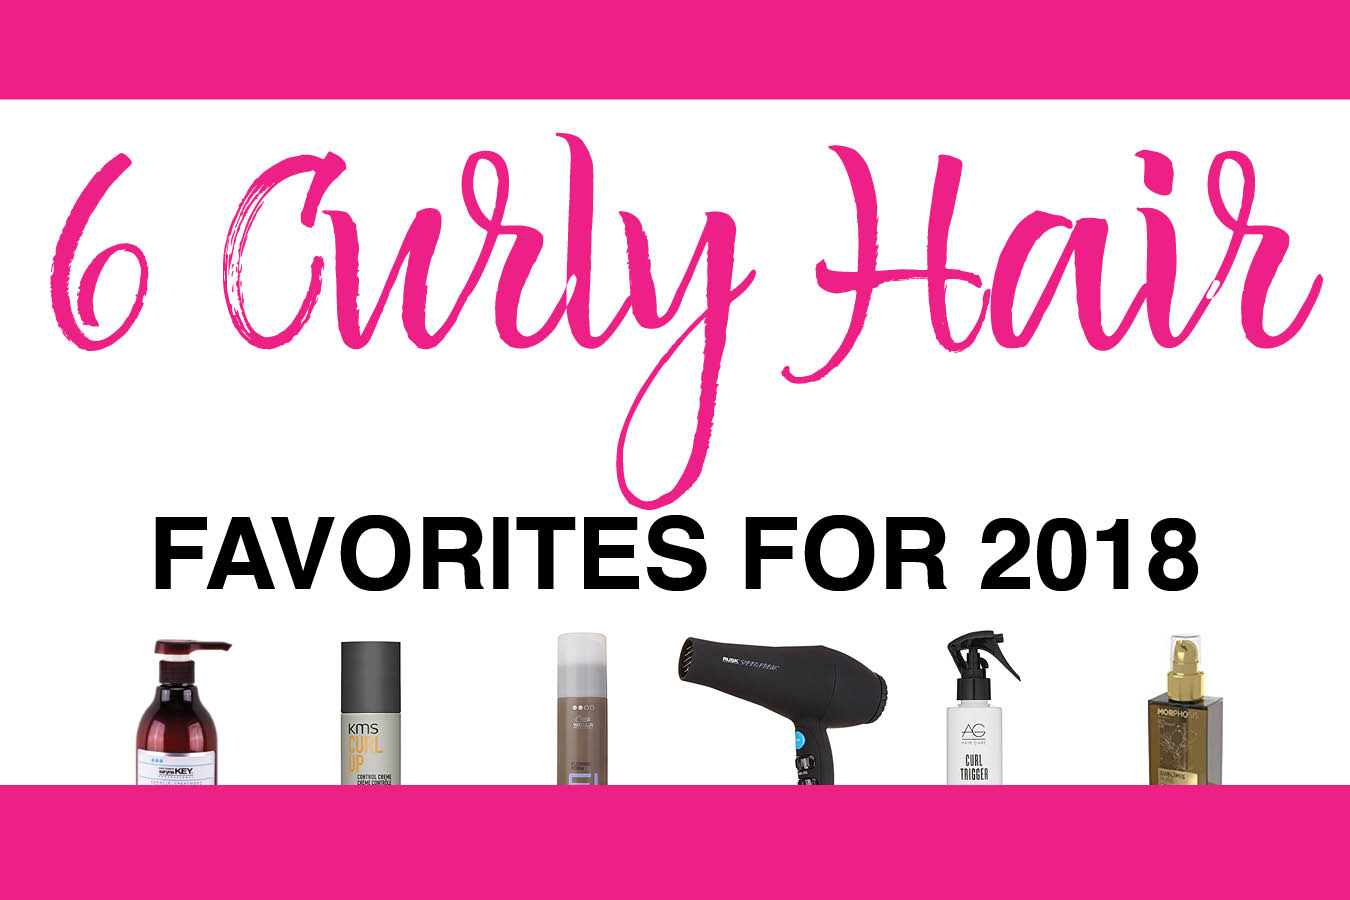 6 Curly Hair Favorites for 2018